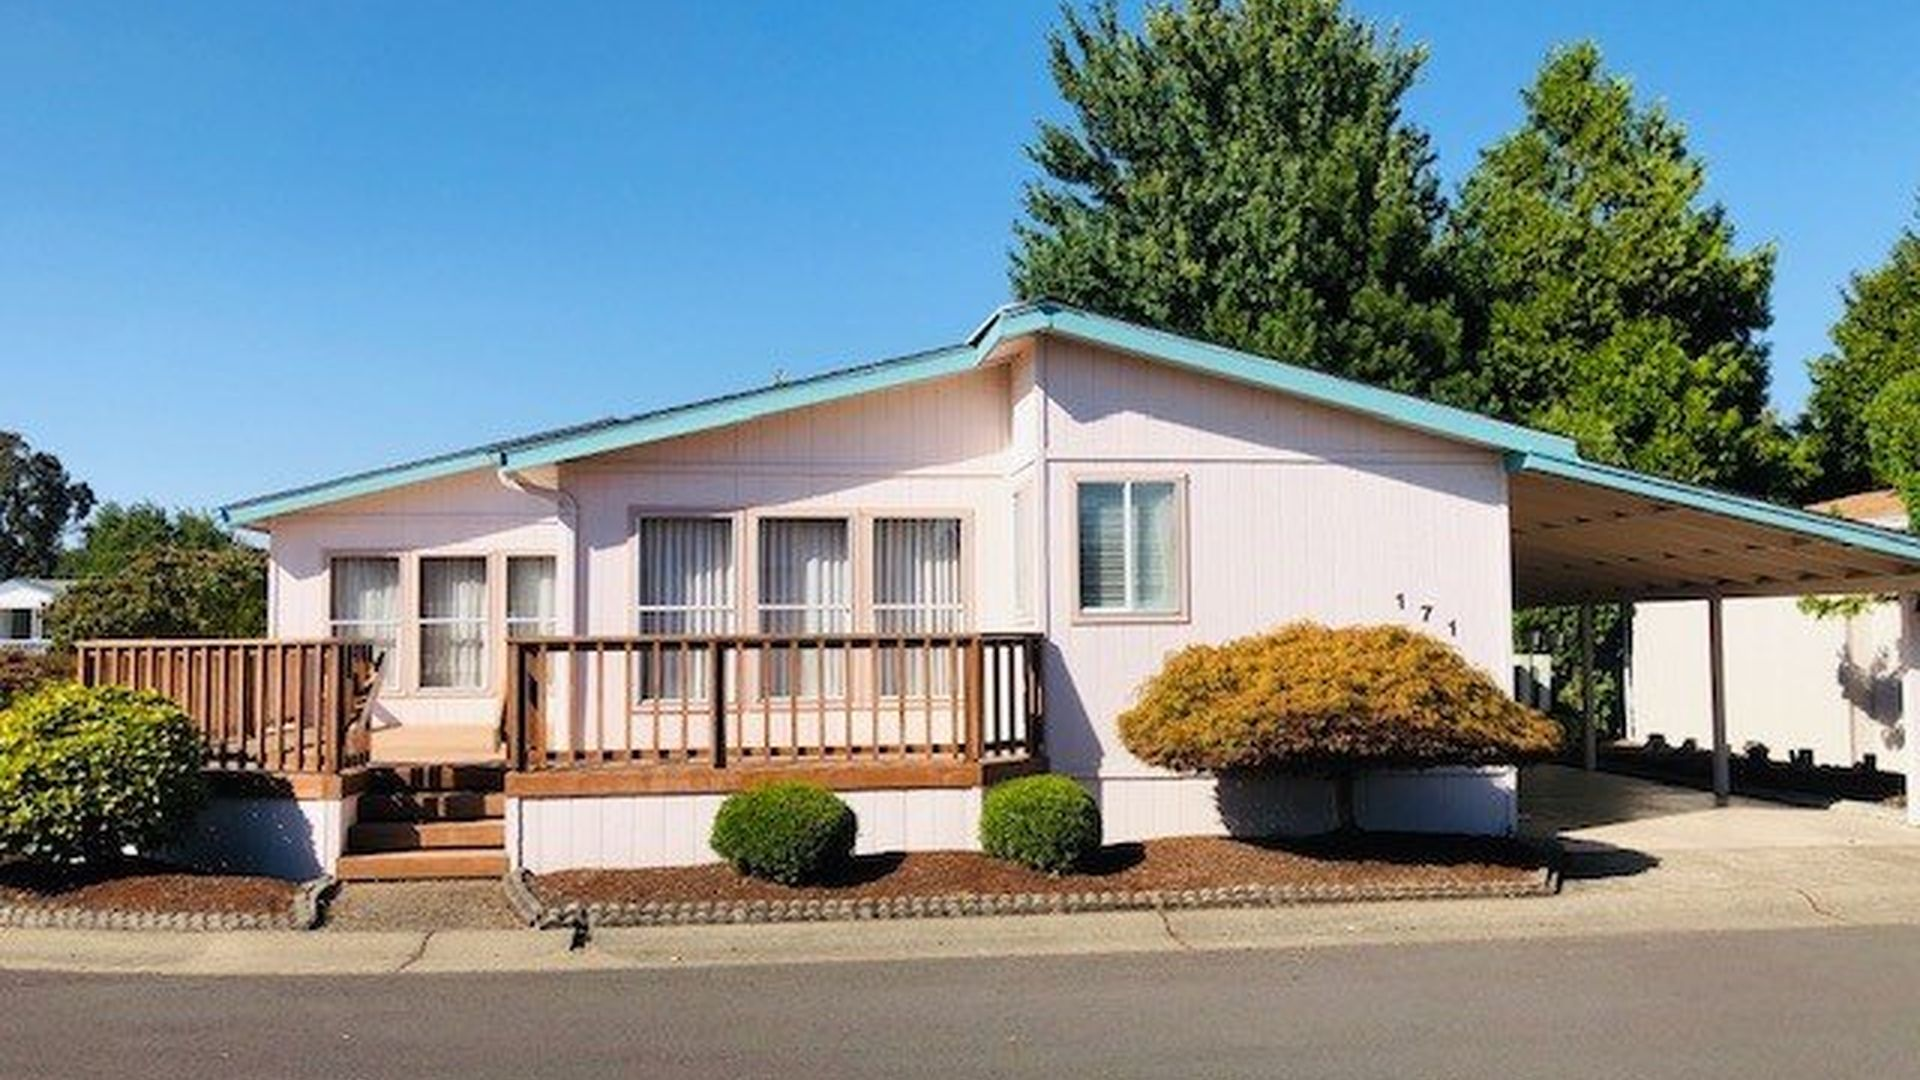 Lane County OR Mobile Homes & Manufactured Homes For Sale